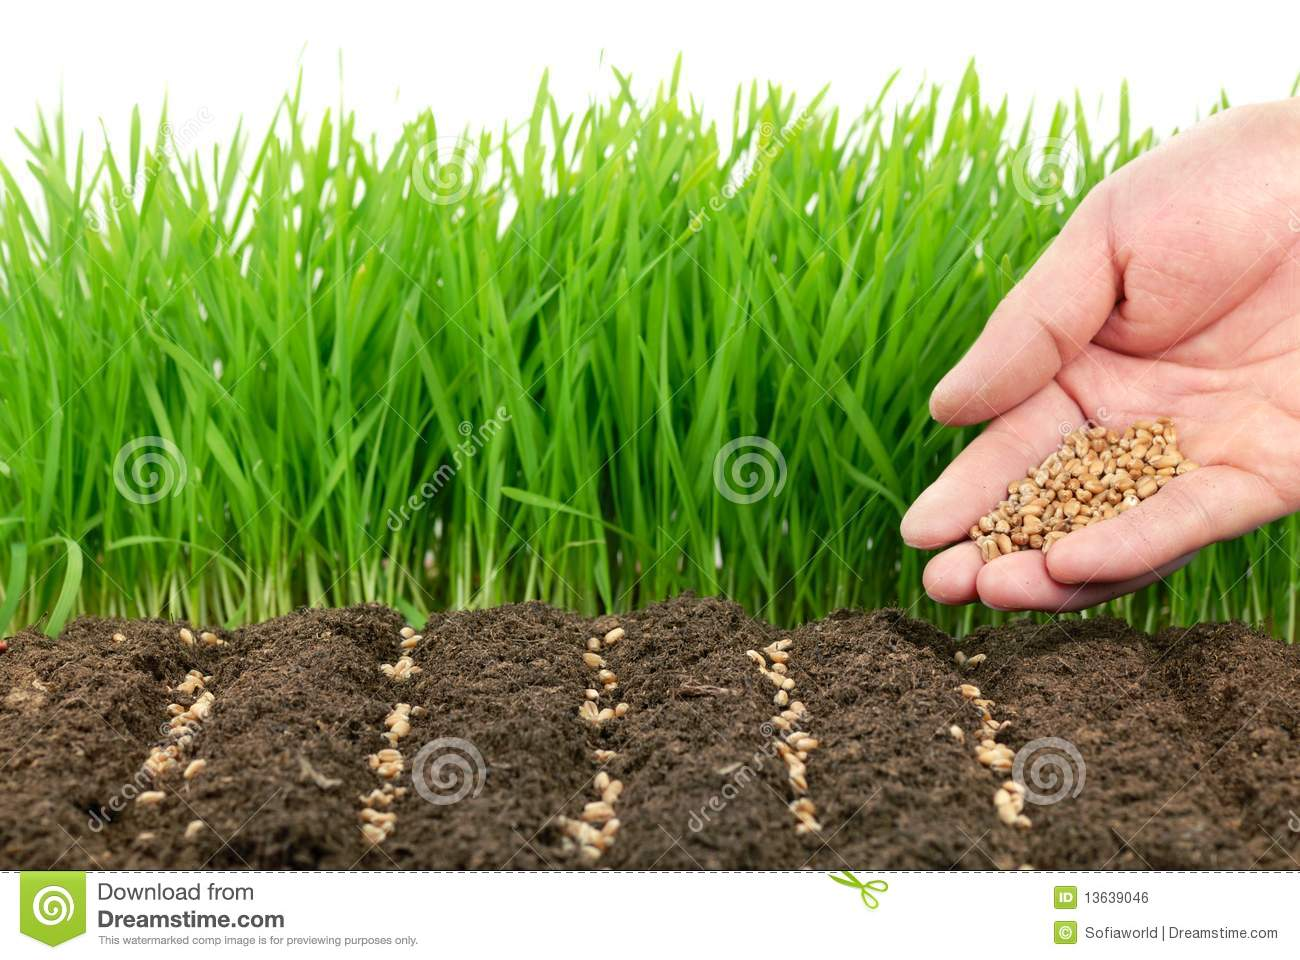 Zonnebloempitten Zaaien Wheat Seeds And Their Plant Royalty Free Stock Image